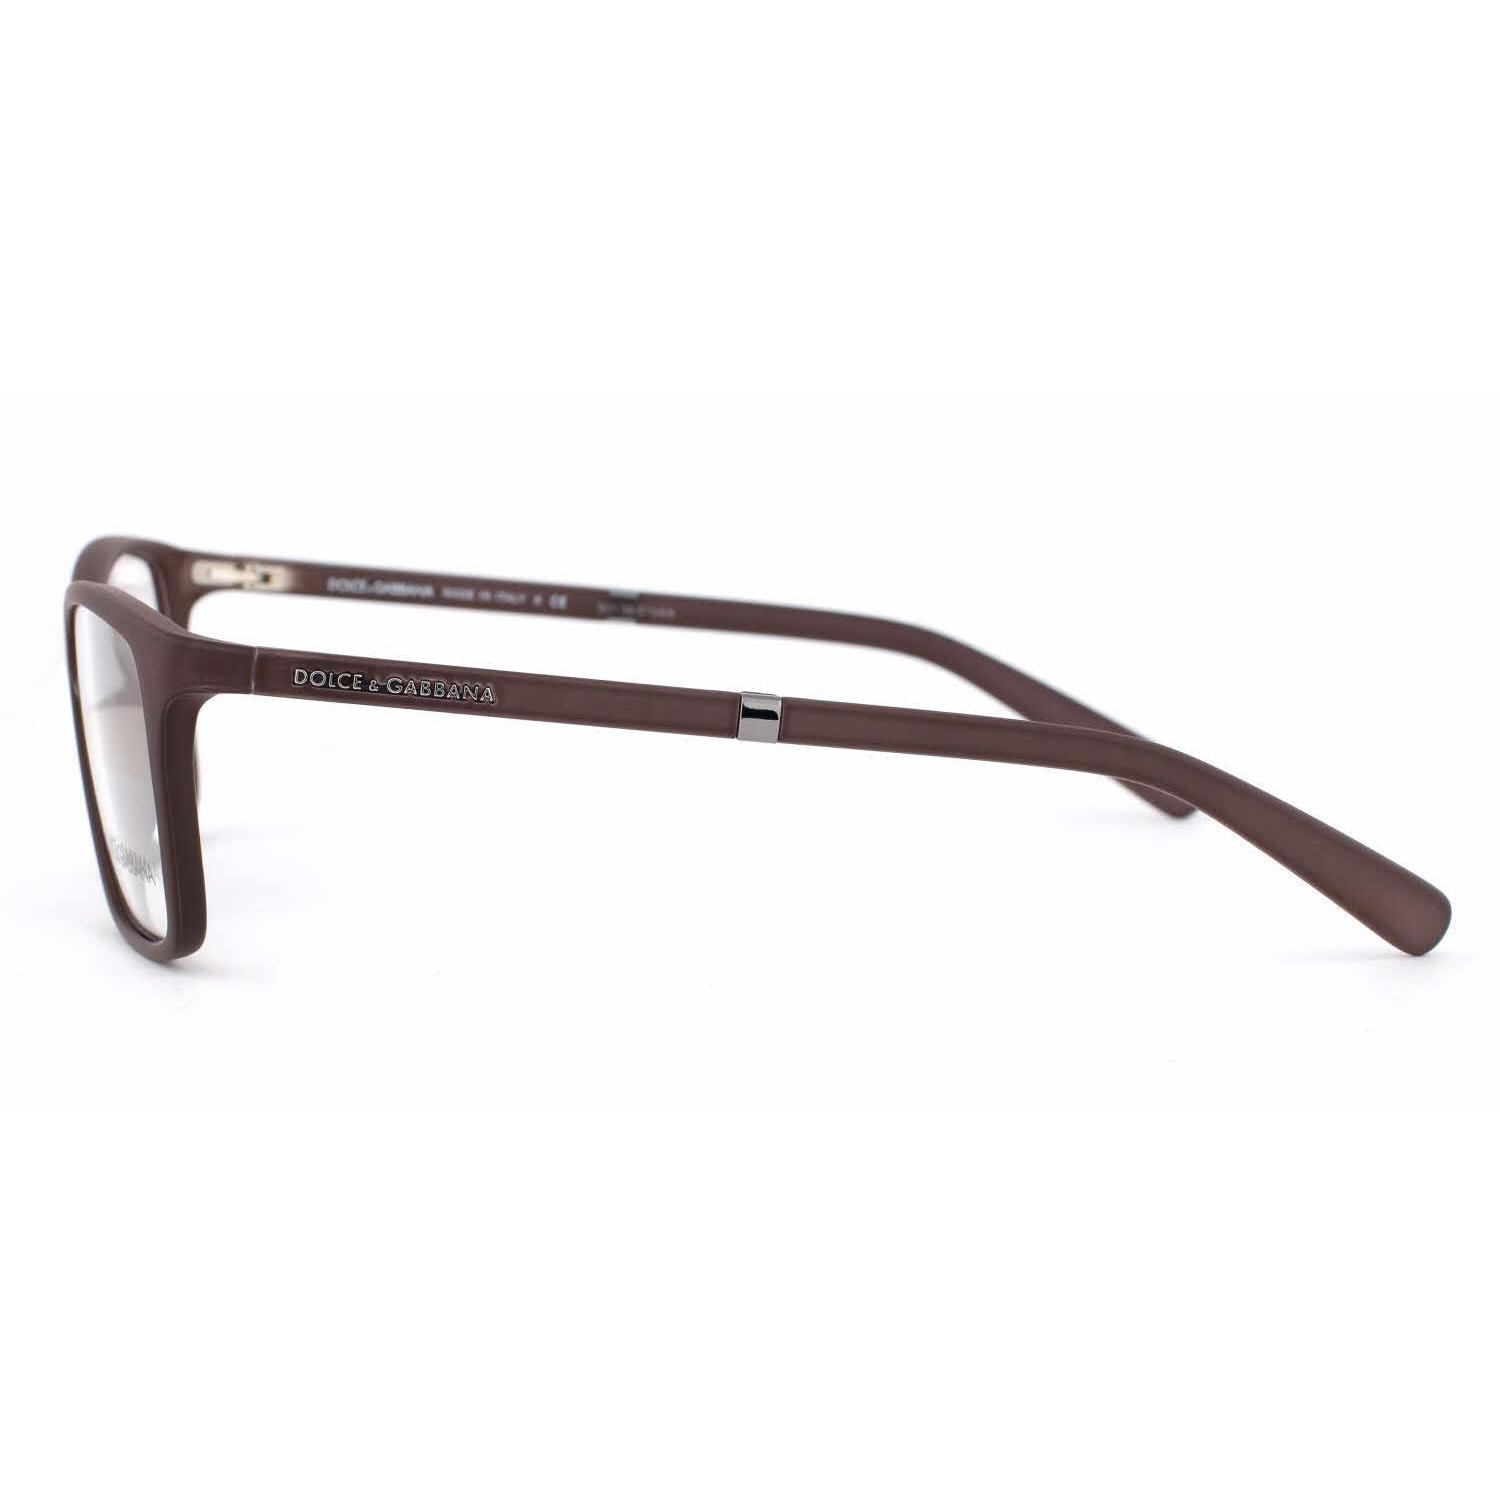 7cd8efdf8aa Shop Dolce   Gabbana Mens DG5004 LIFESTYLE 2652 Brown Plastic Rectangle  Eyeglasses - Free Shipping Today - Overstock.com - 13613630